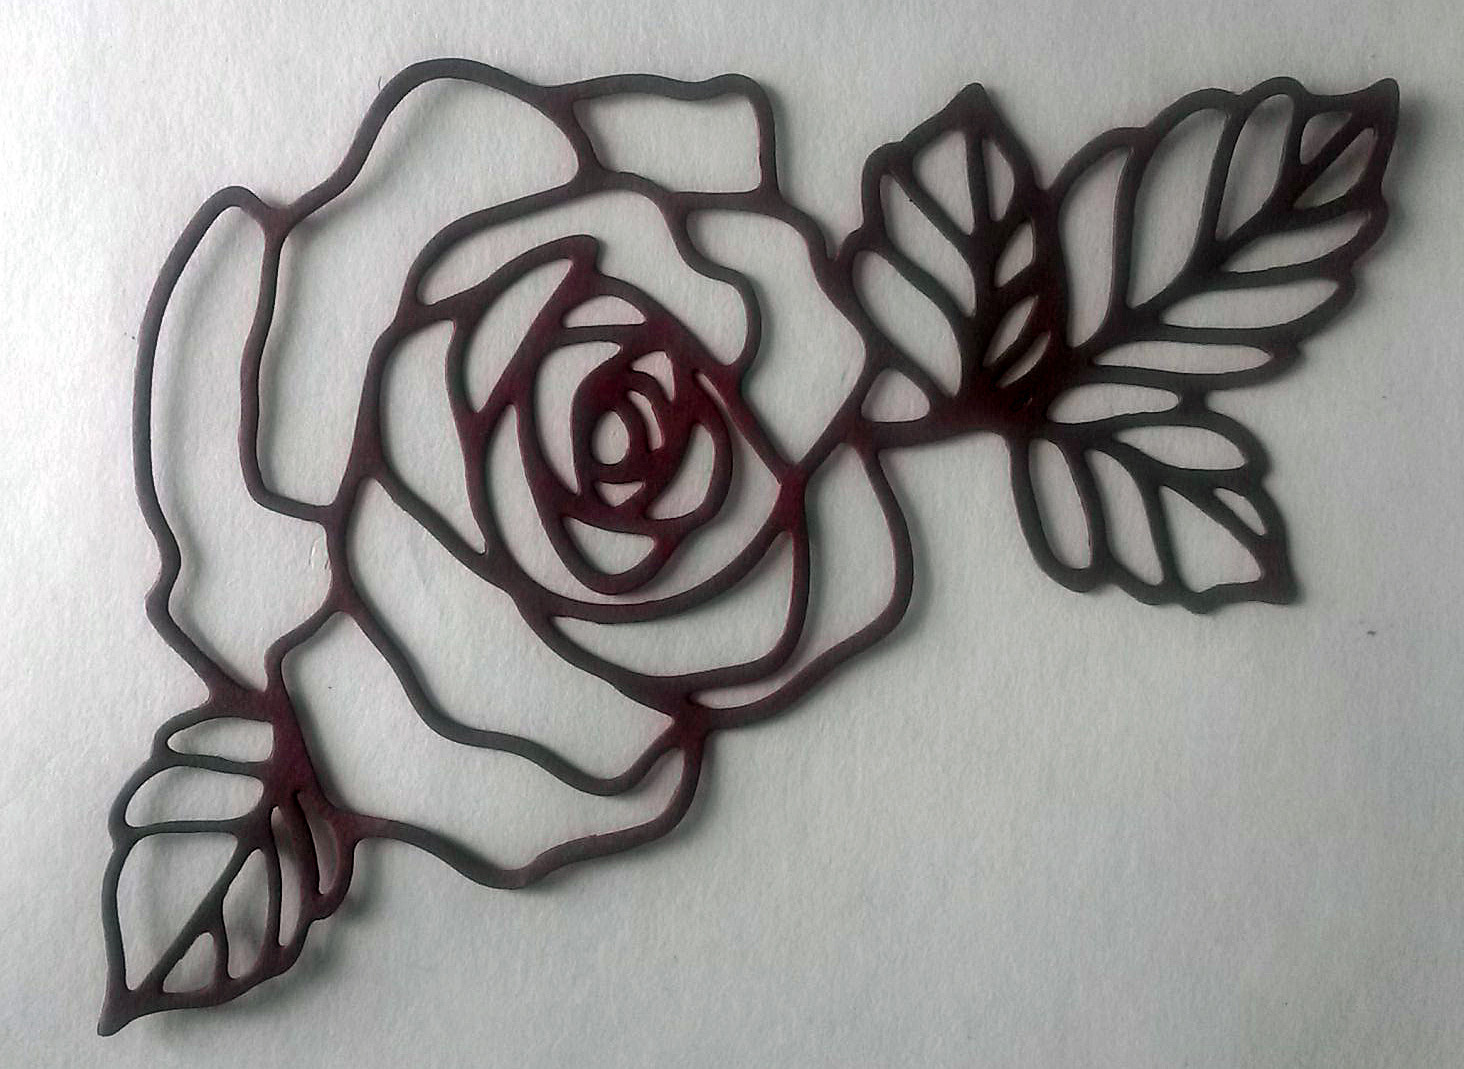 Rose for Saint Valentine's Day | Photoshop Tutorials ... |Rose Cut Out